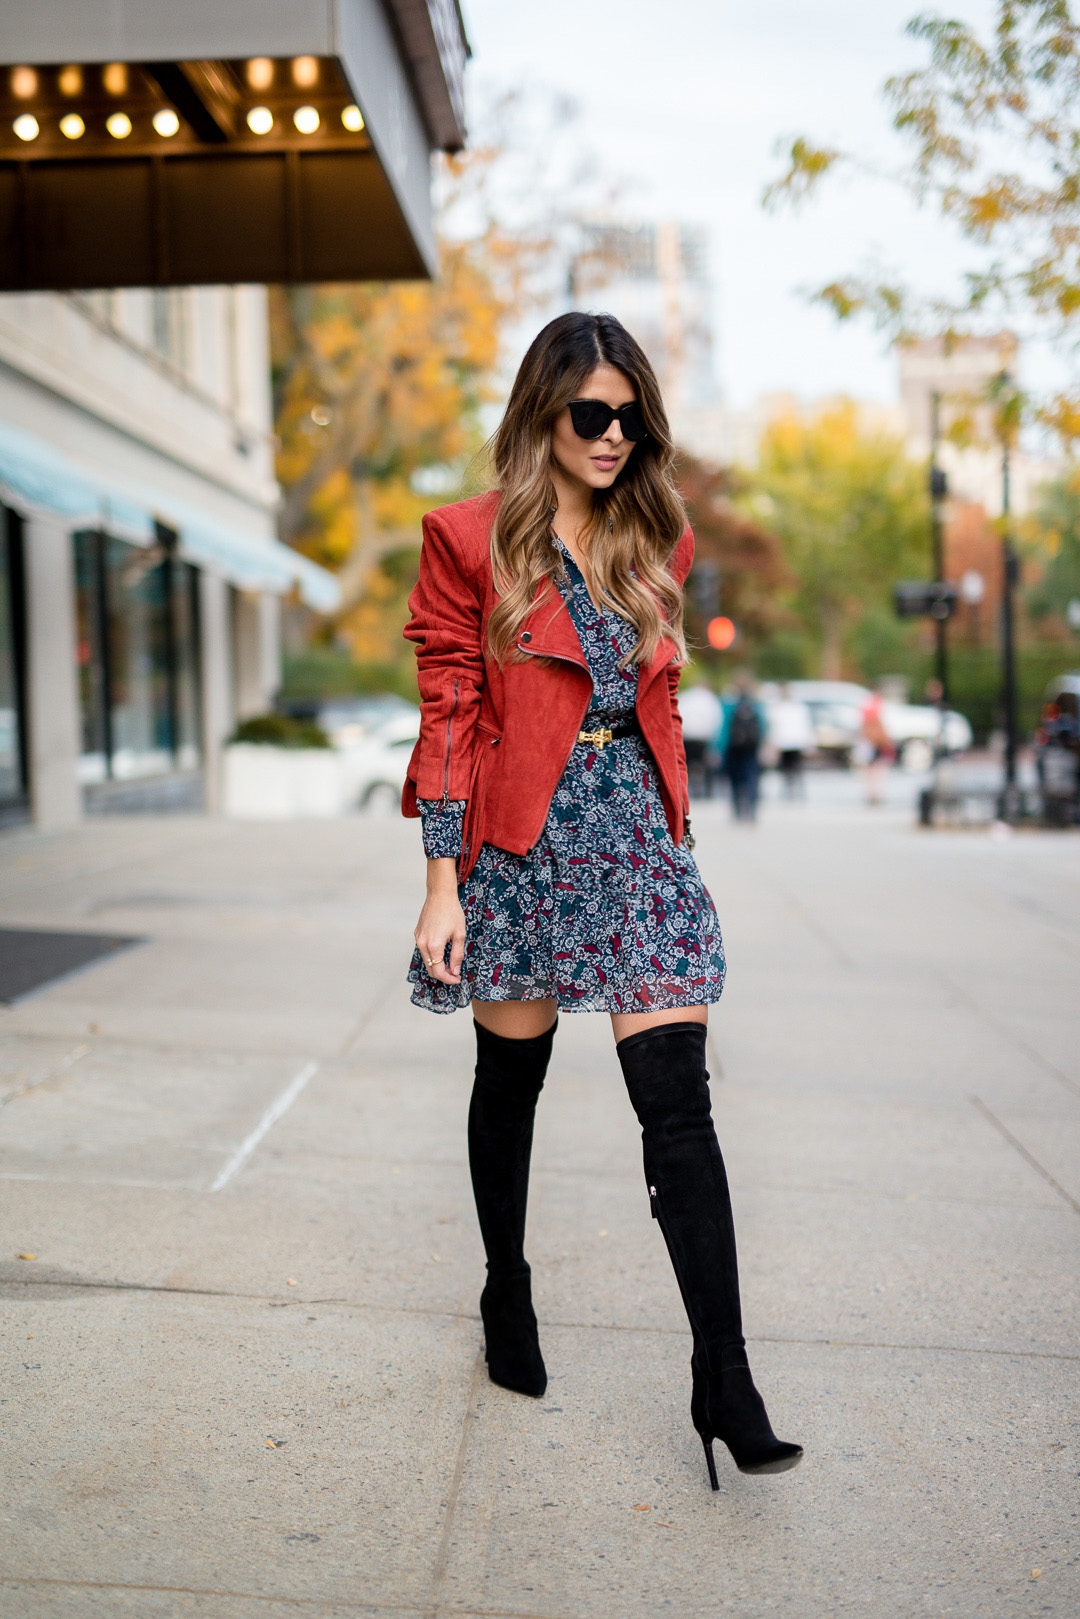 how to wear floral dress in fall